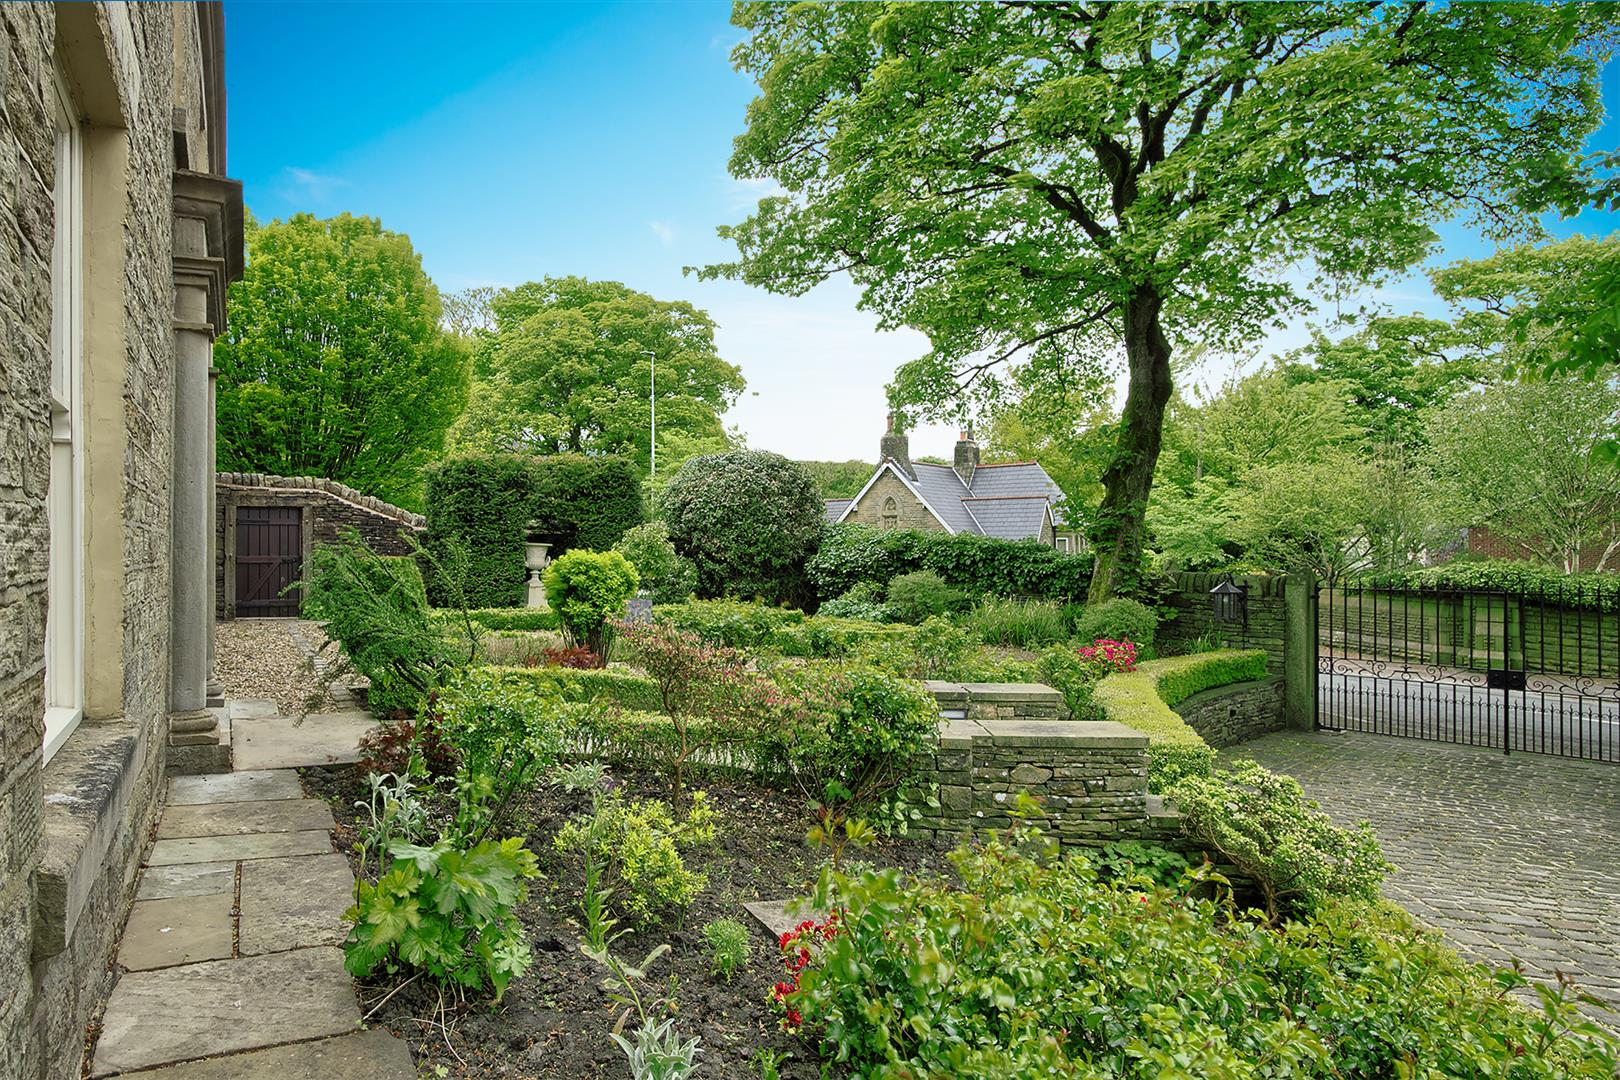 5 bedroom detached house For Sale in Bolton - front garden.png.